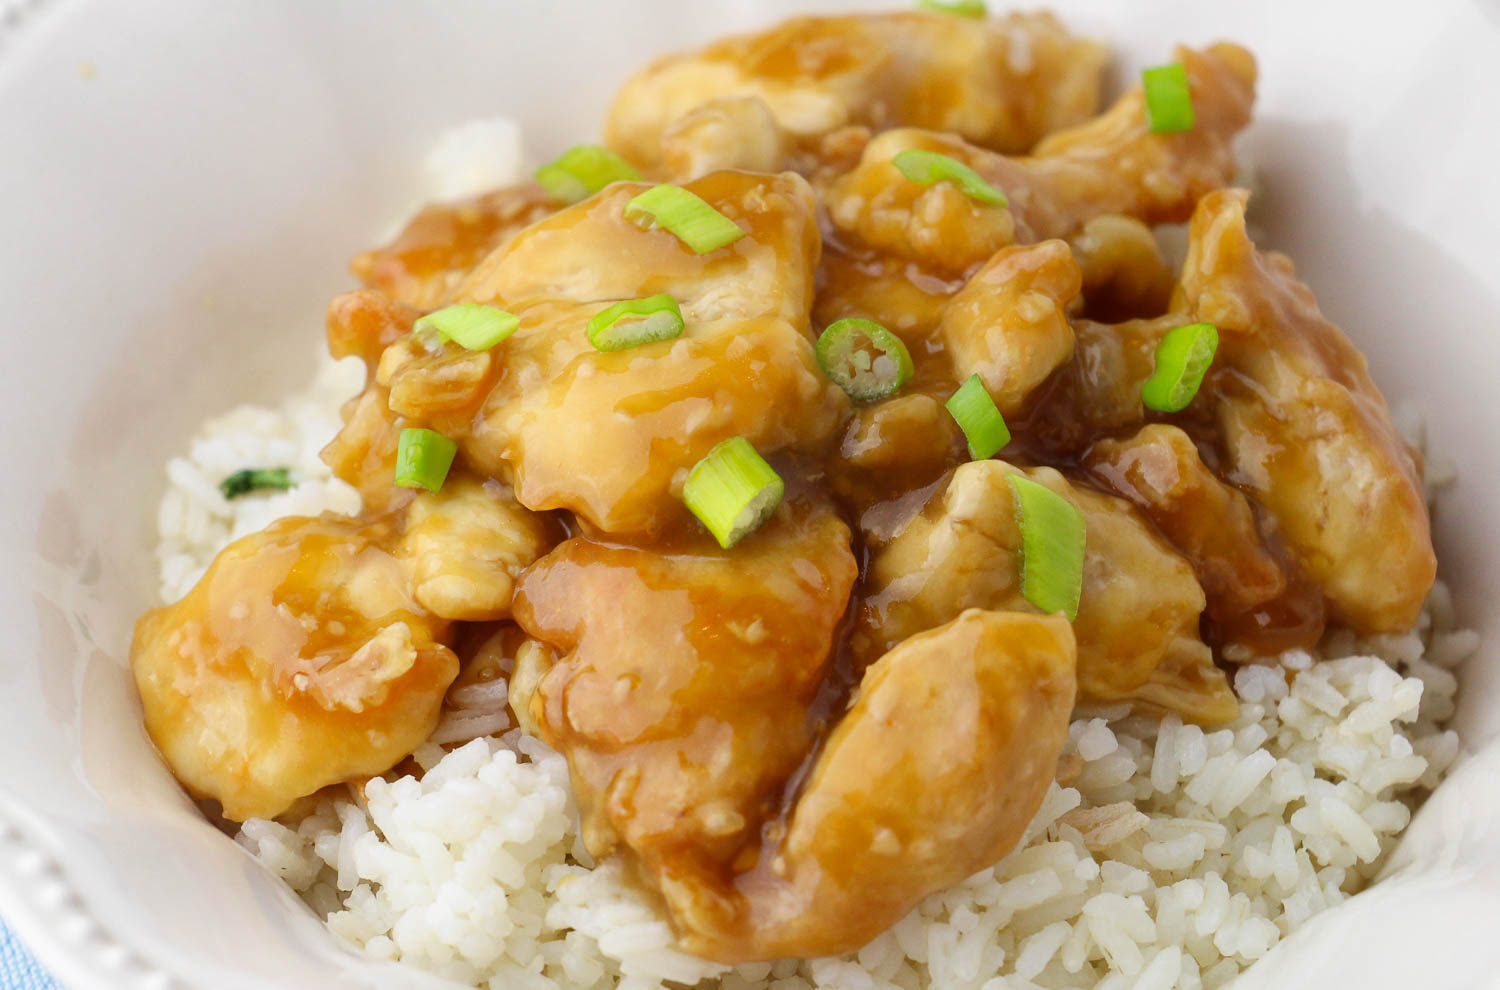 A white bowl of rice and orange chicken with green onions on it.